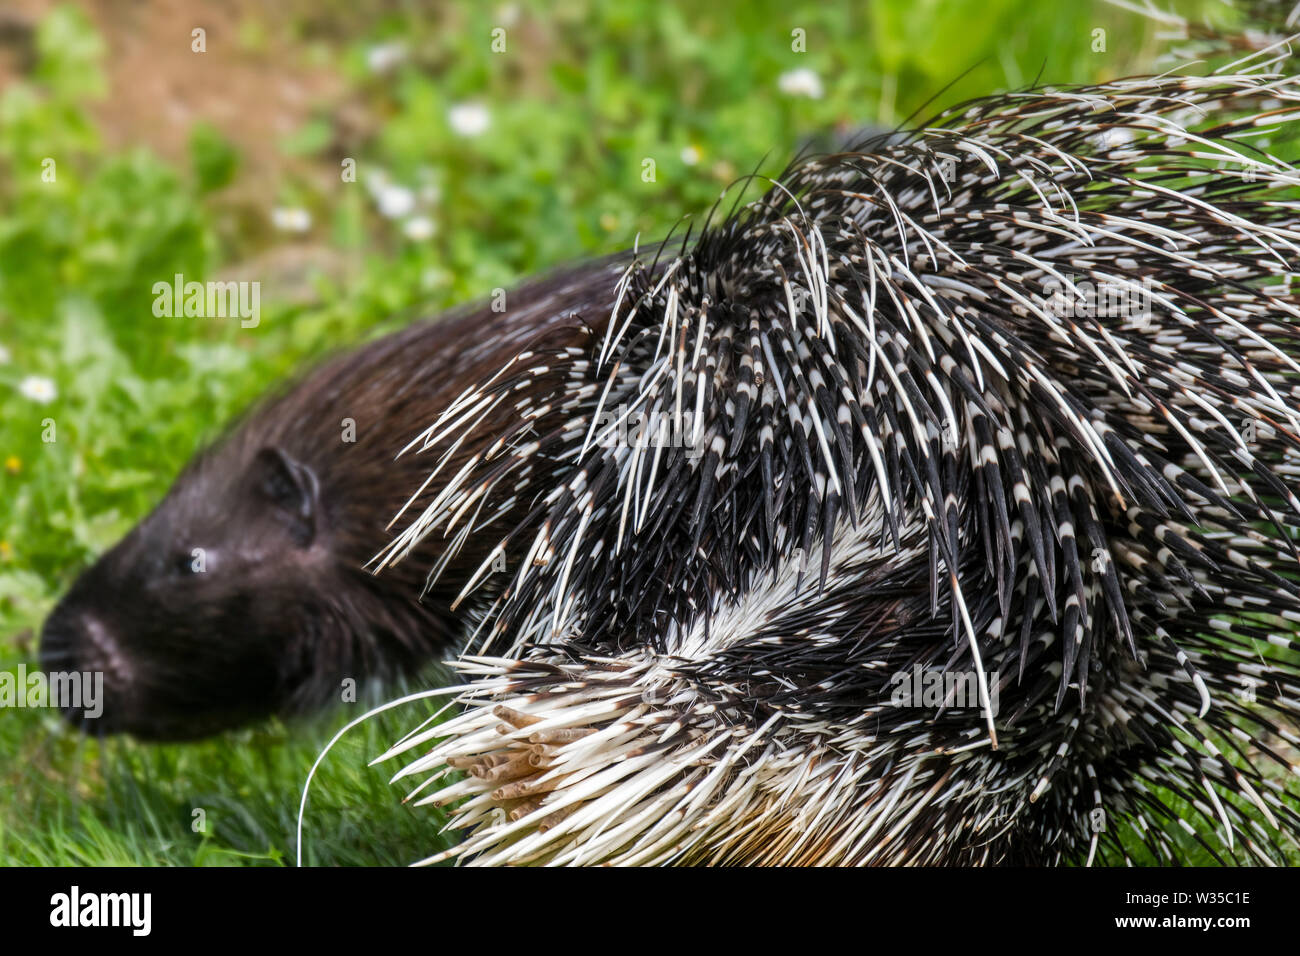 Crested porcupine (Hystrix cristata) close up of quills, native to Italy, North Africa and sub-Saharan Africa Stock Photo